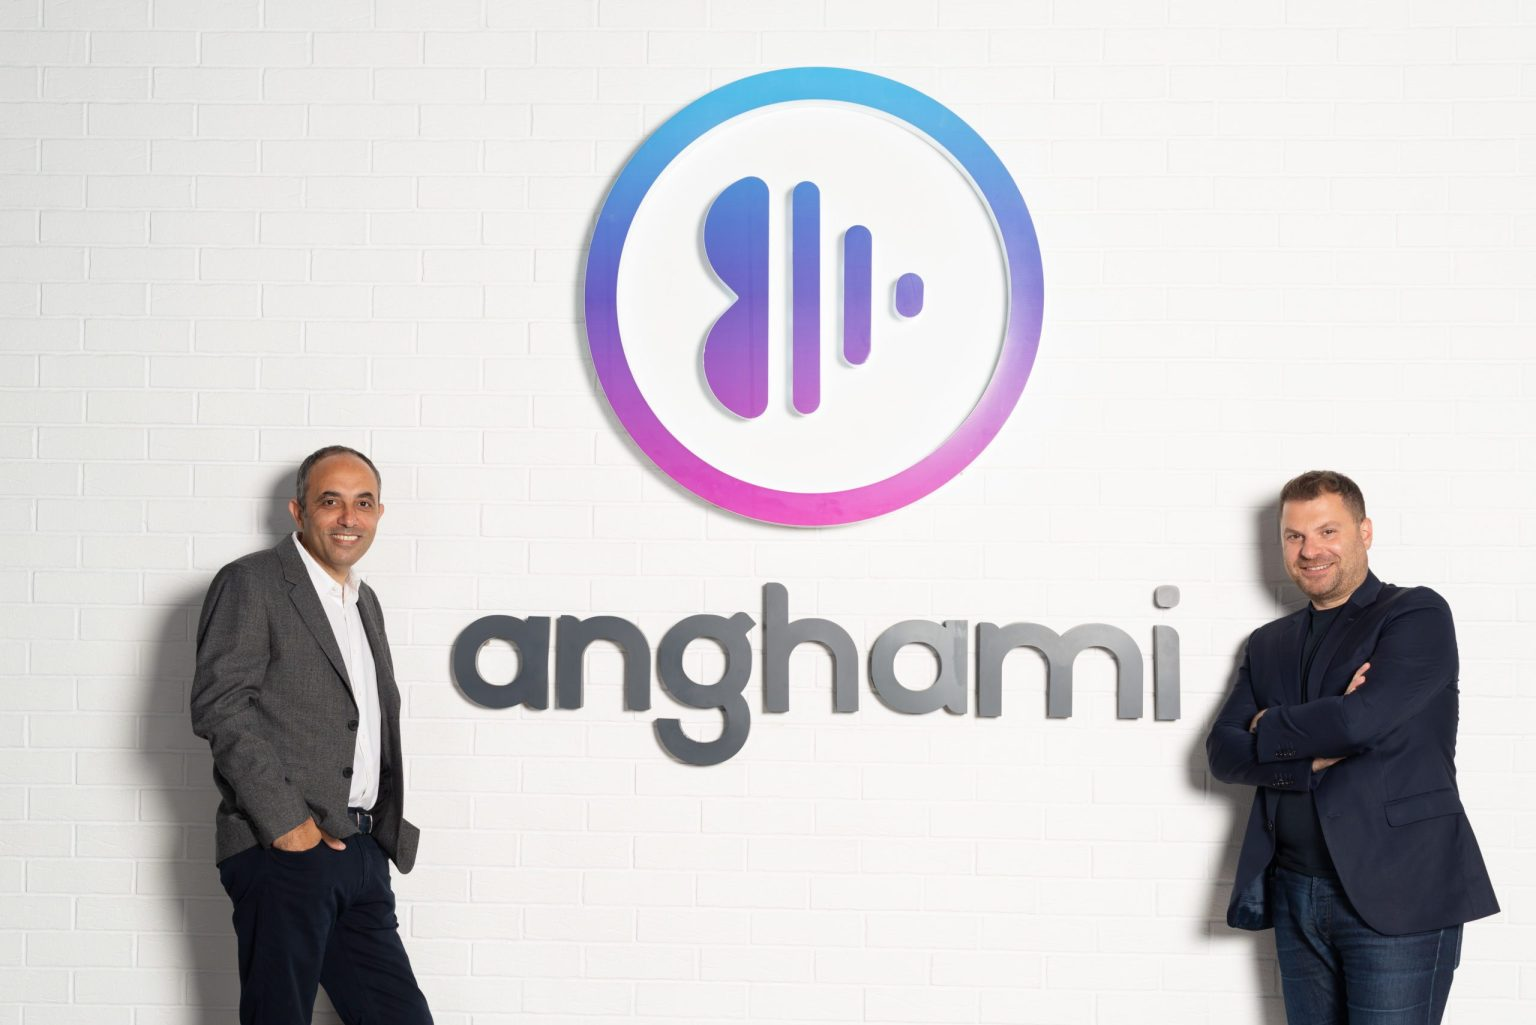 Anghami, the leading music streaming platform in the Middle East and North Africa, merges with Vistas Media Acquisition Company Inc. to become first Arab technology company to list on NASDAQ New York